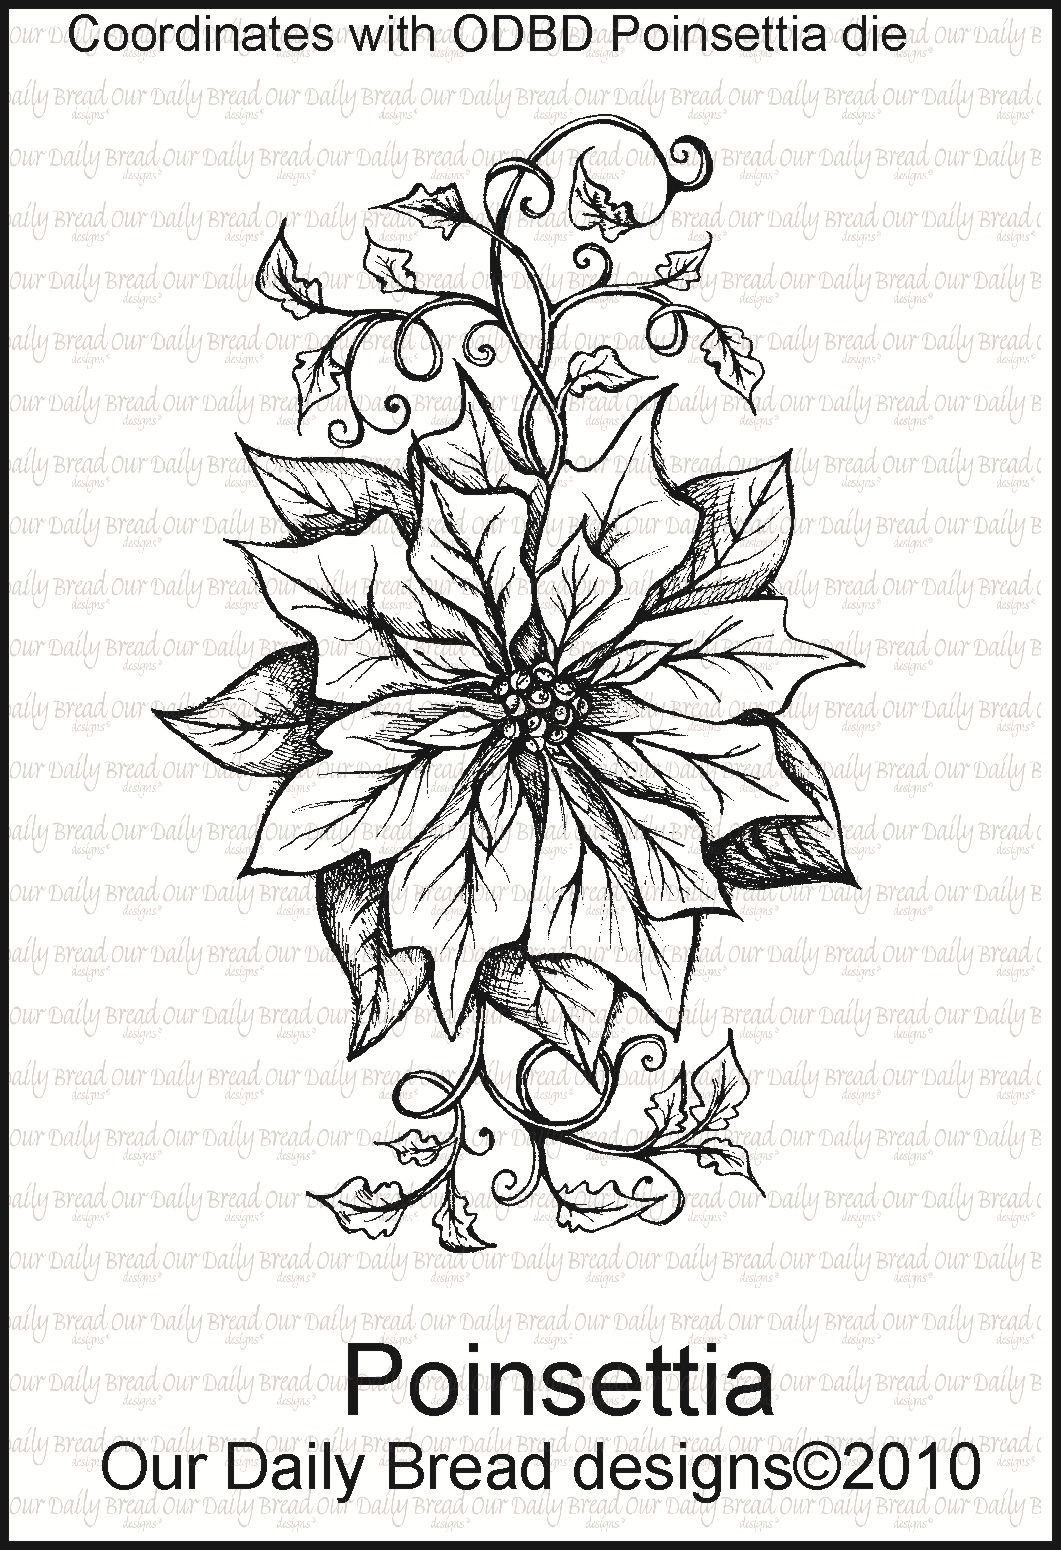 Poinsettia top of banner opposite corner | tattoo | Pinterest ...